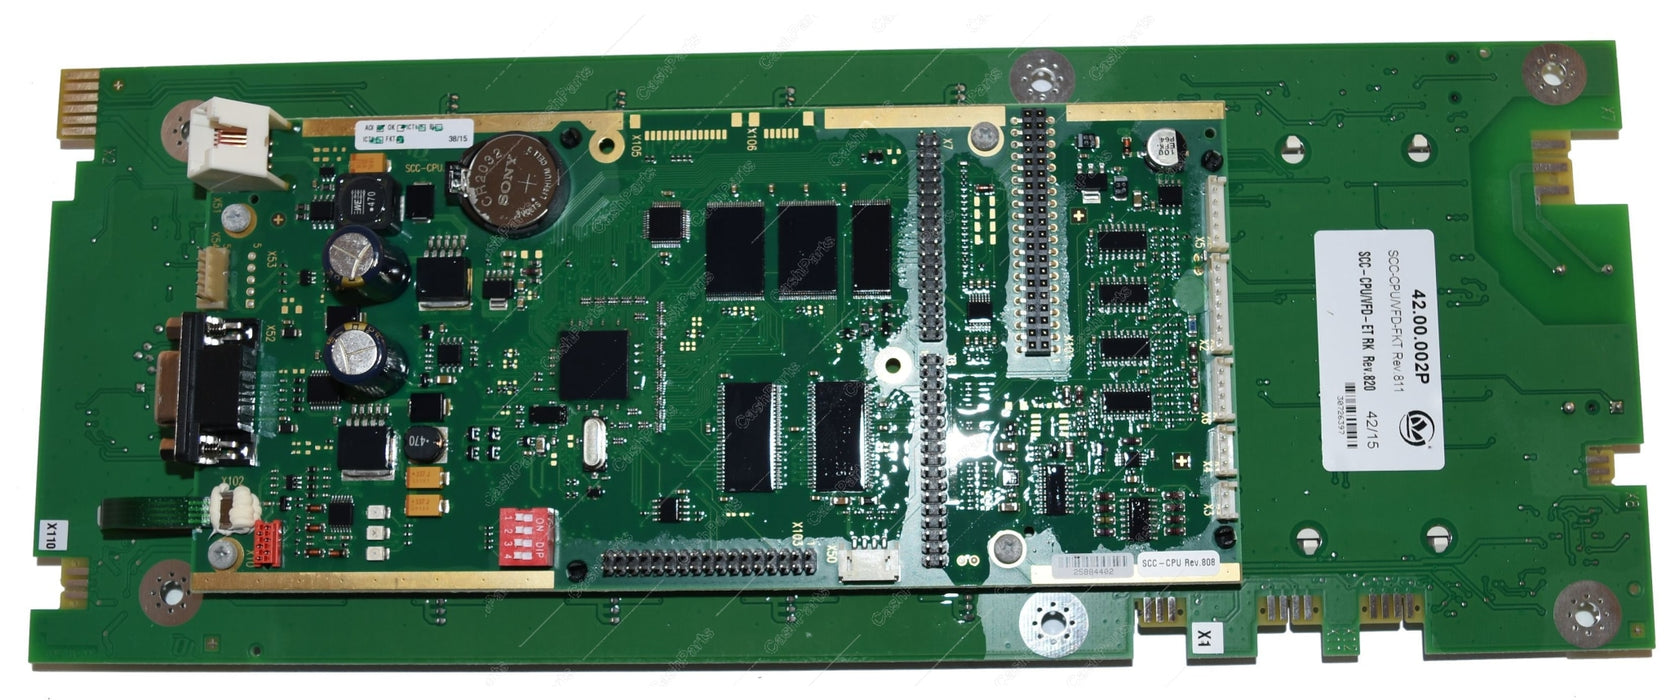 42.00.002P Control pcb SCC line SCC 61-202 As of 04/04 replaces 42.00.002 RATIONAL